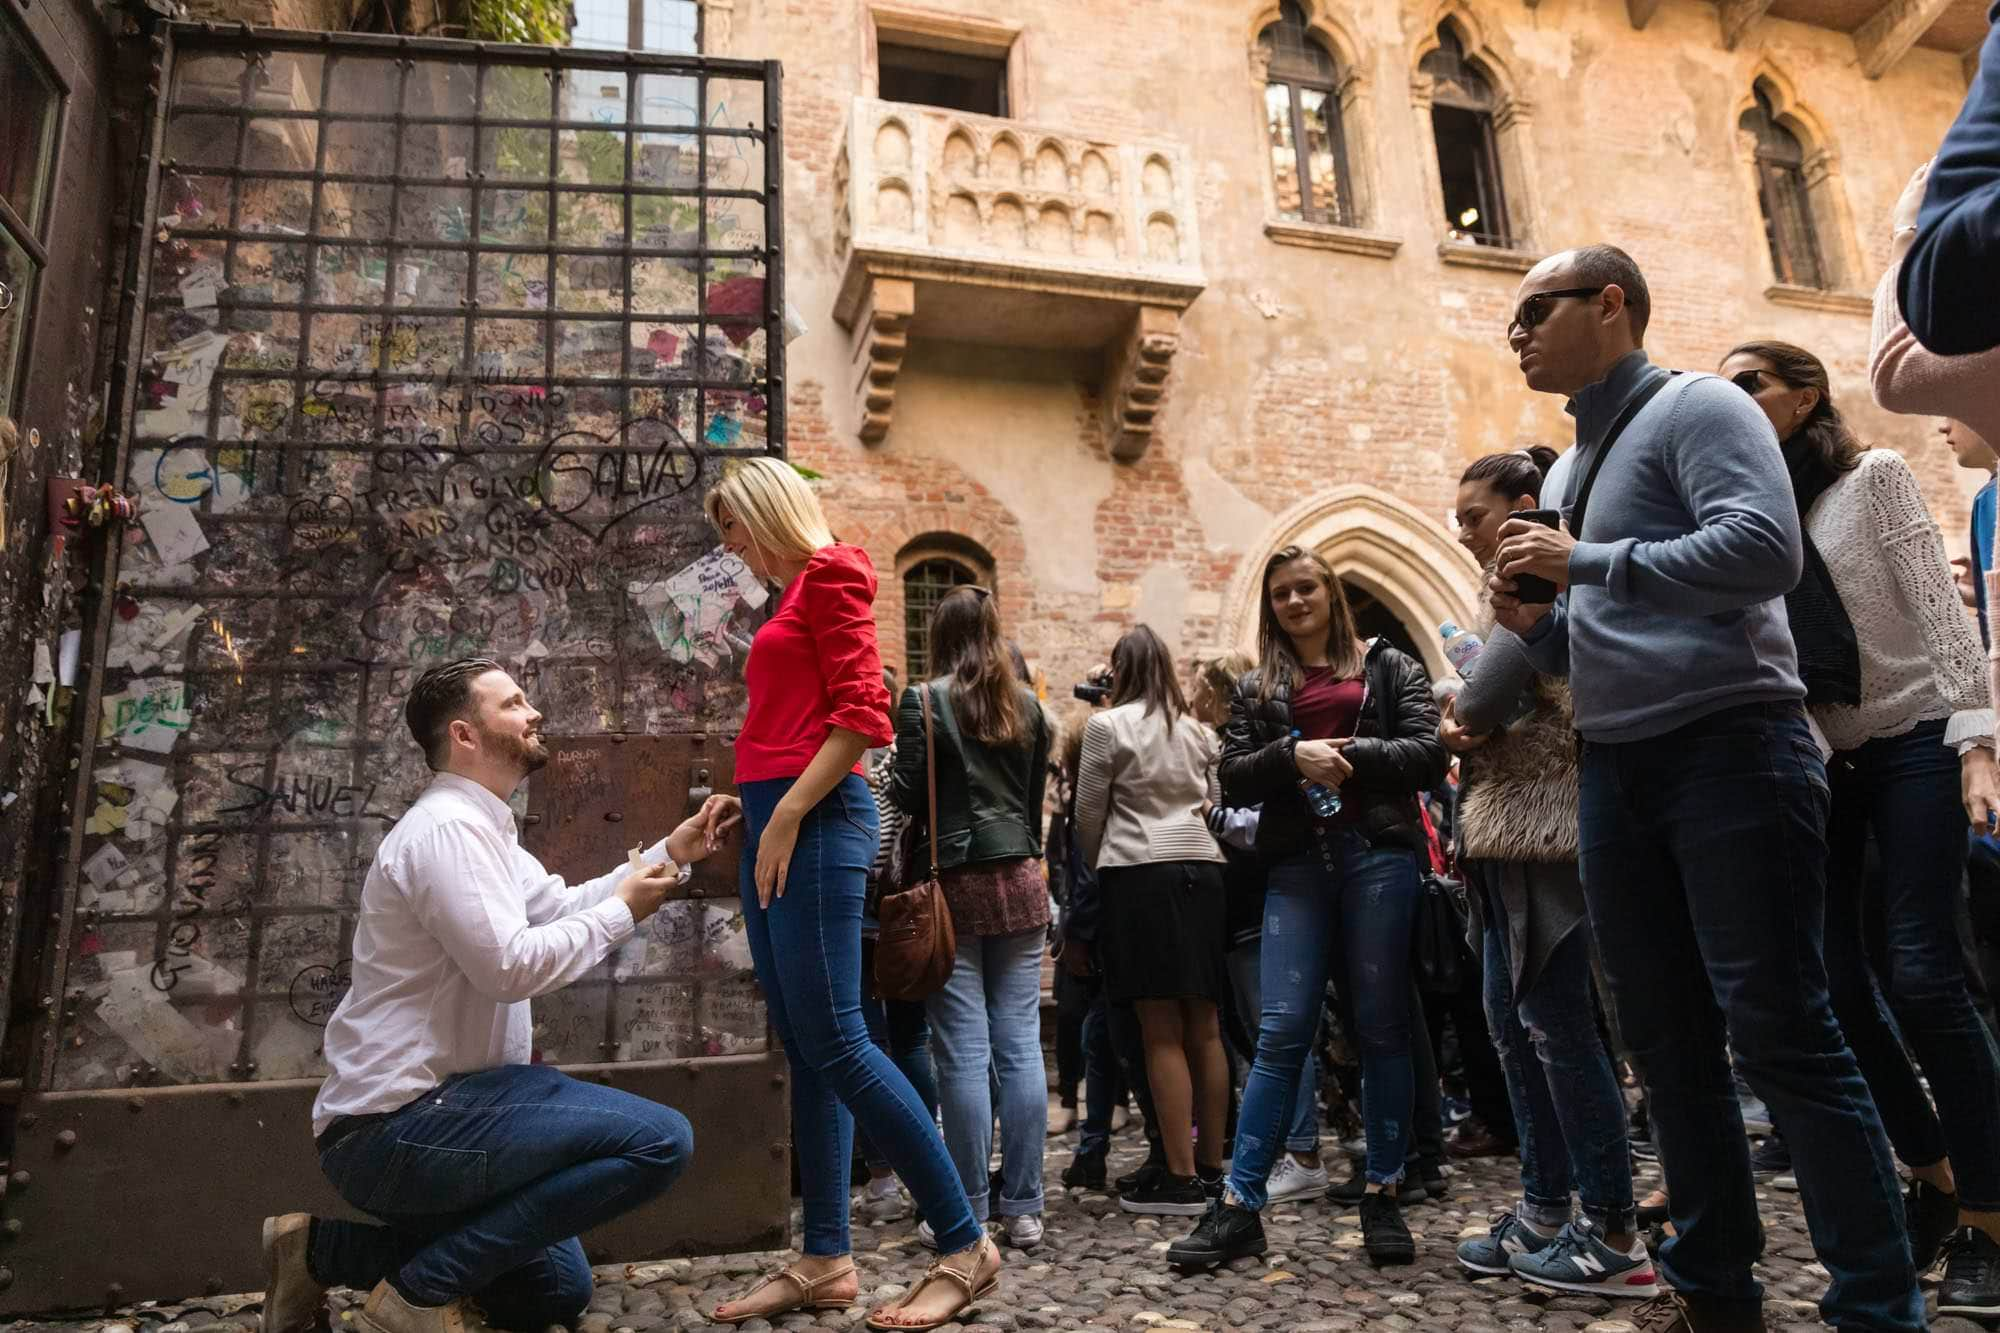 He goes down on one knee to propose marriage to his girlfriend at Casa di Giulietta in Verona